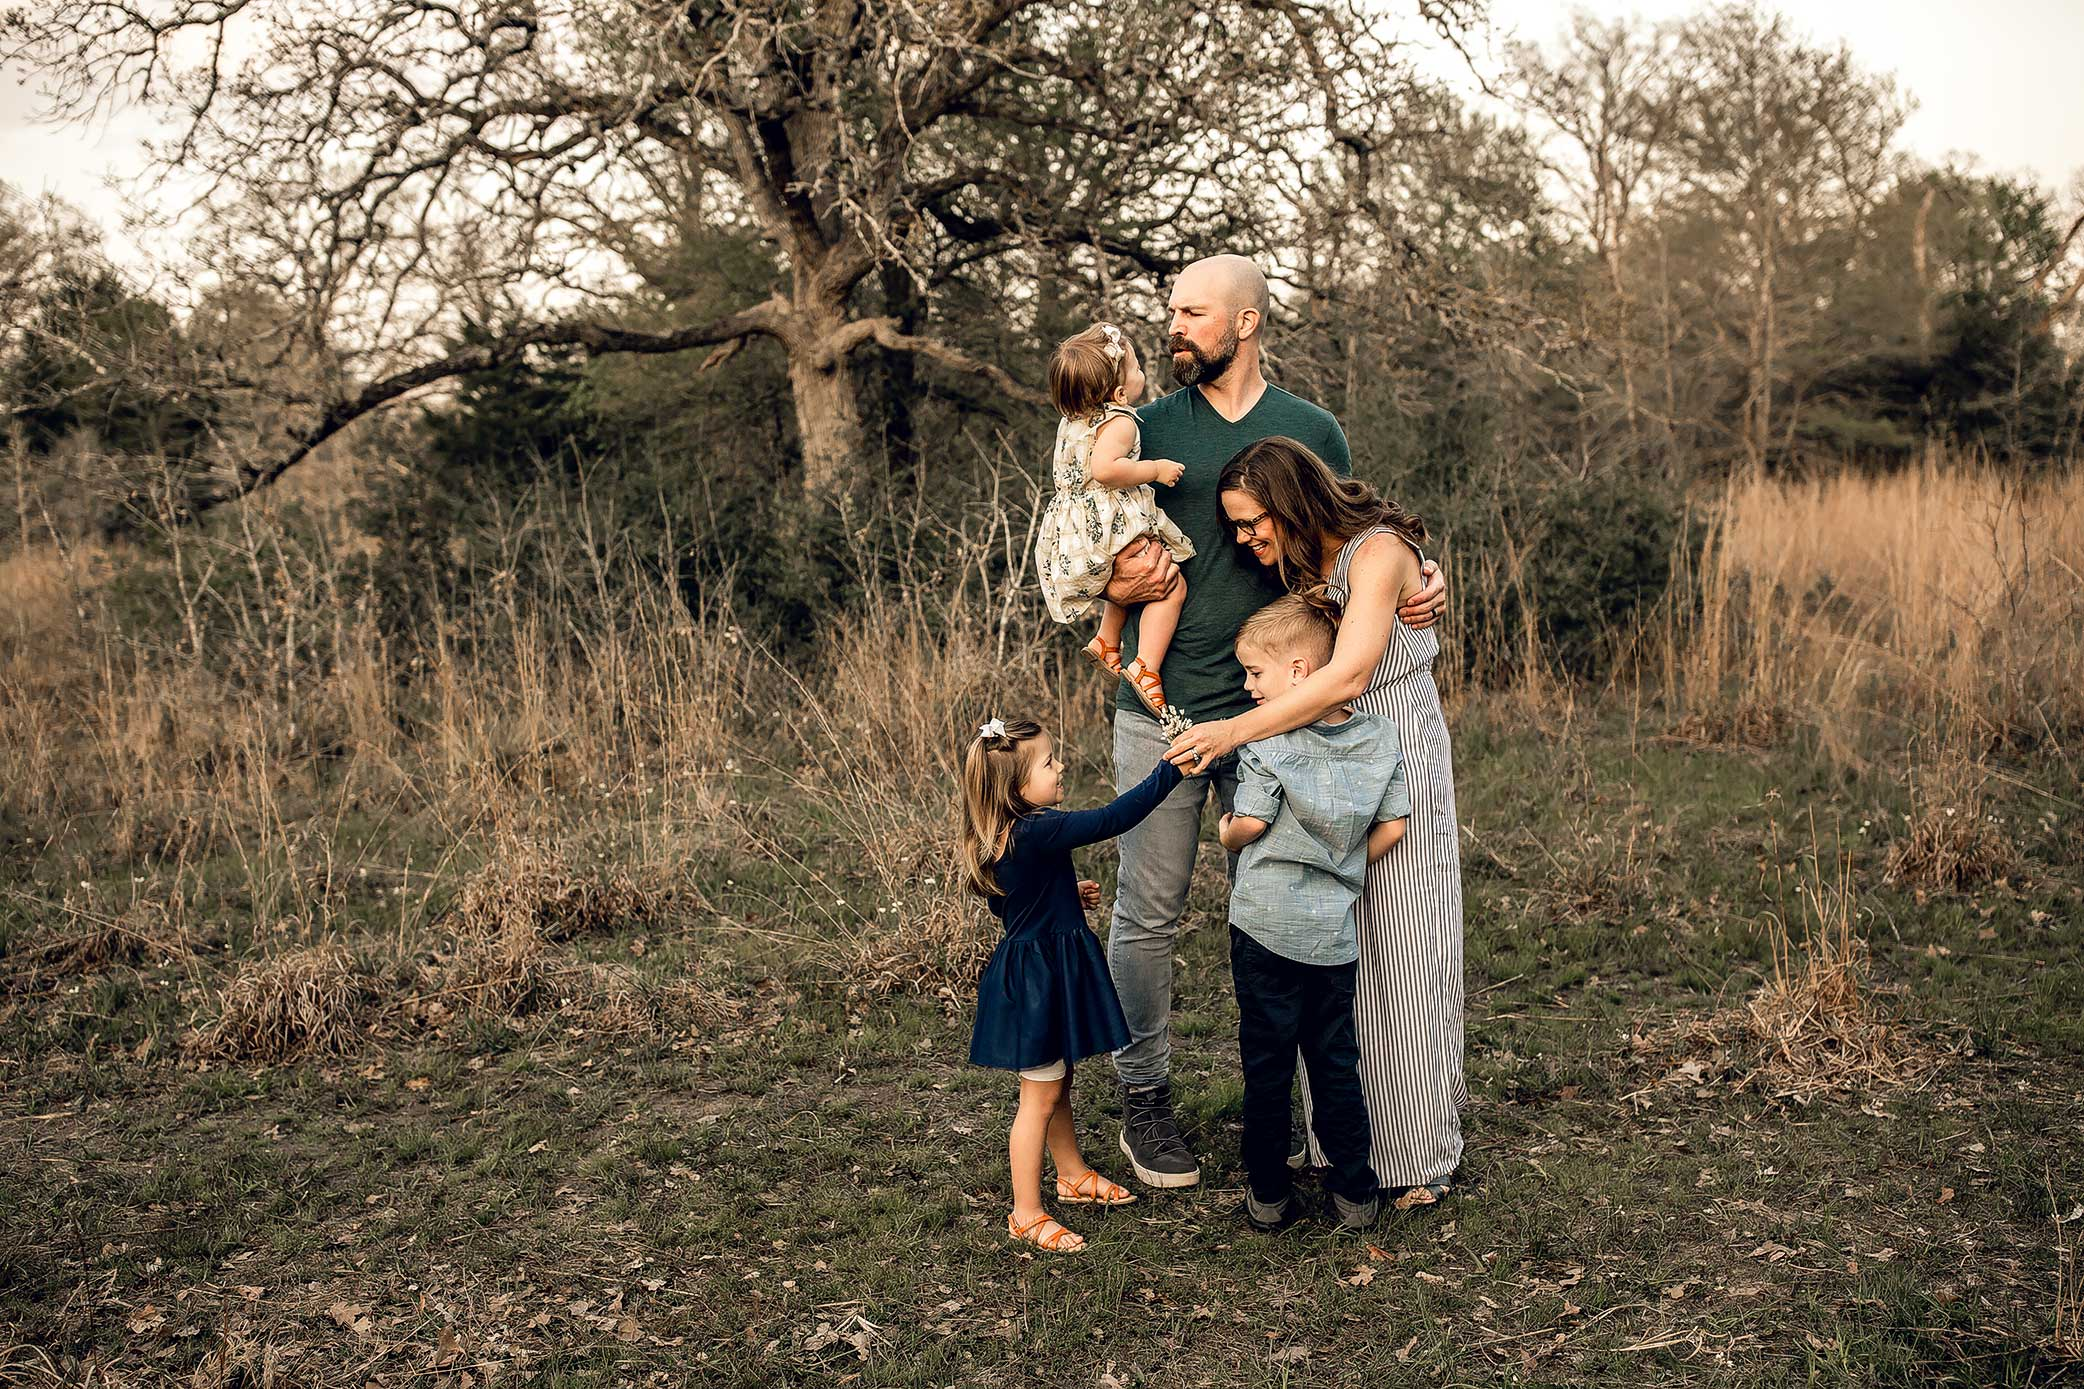 shelby-schiller-photography-lifestyle-family-outdoor-session-in-natural-park-with-tall-grass-trails-and-trees-college-station.jpg